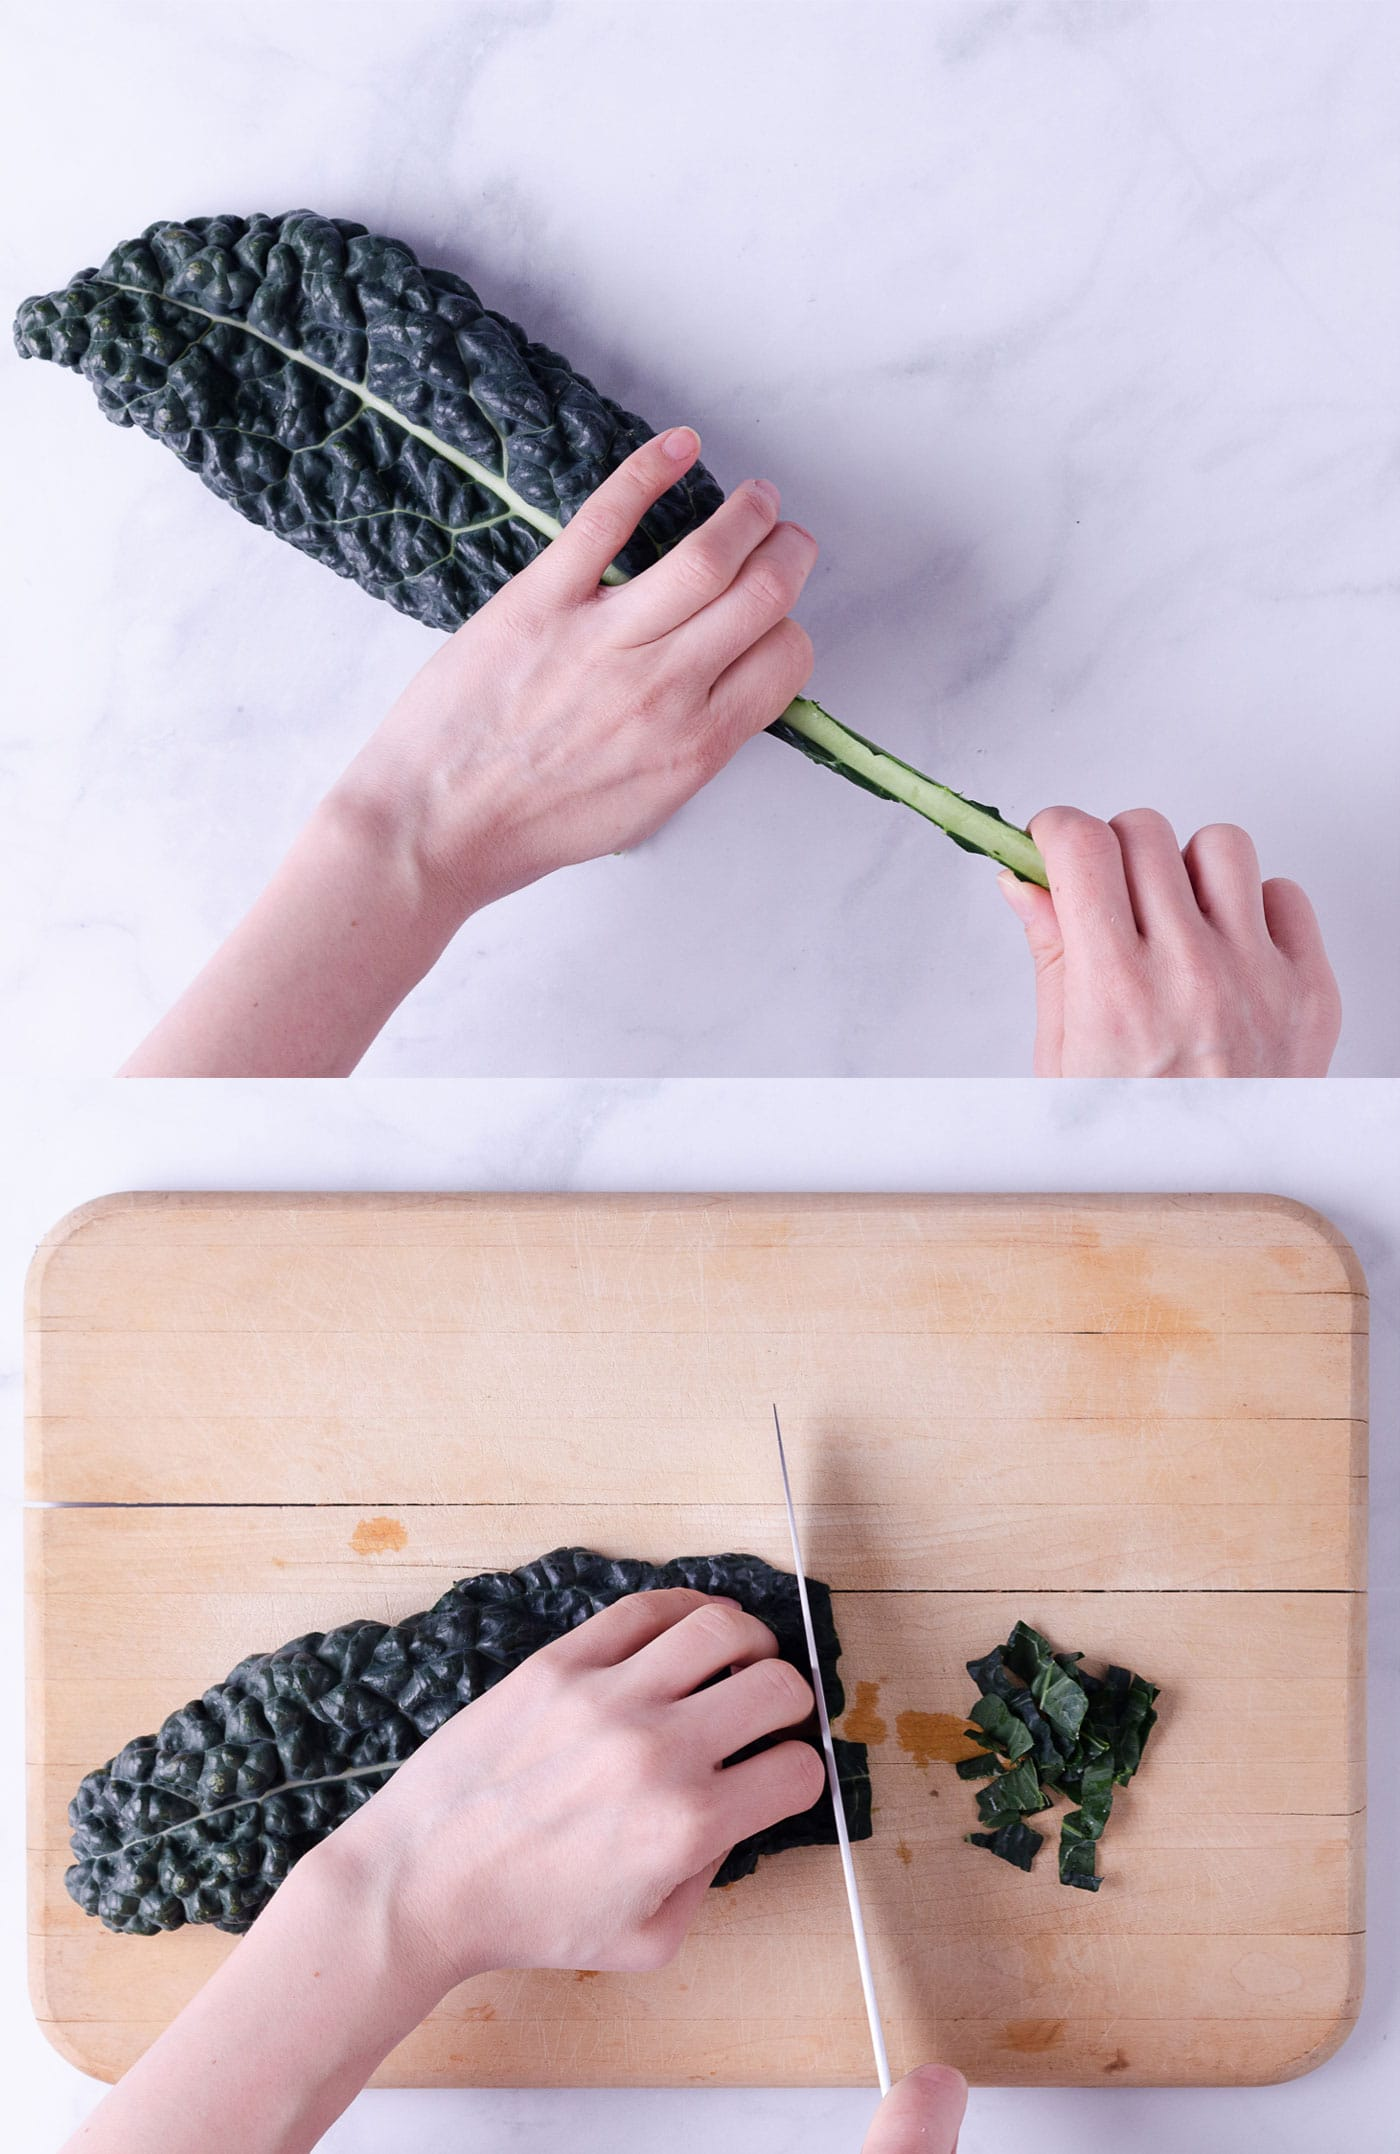 Side by side photos showing how to remove stem of kale and thinly slice.